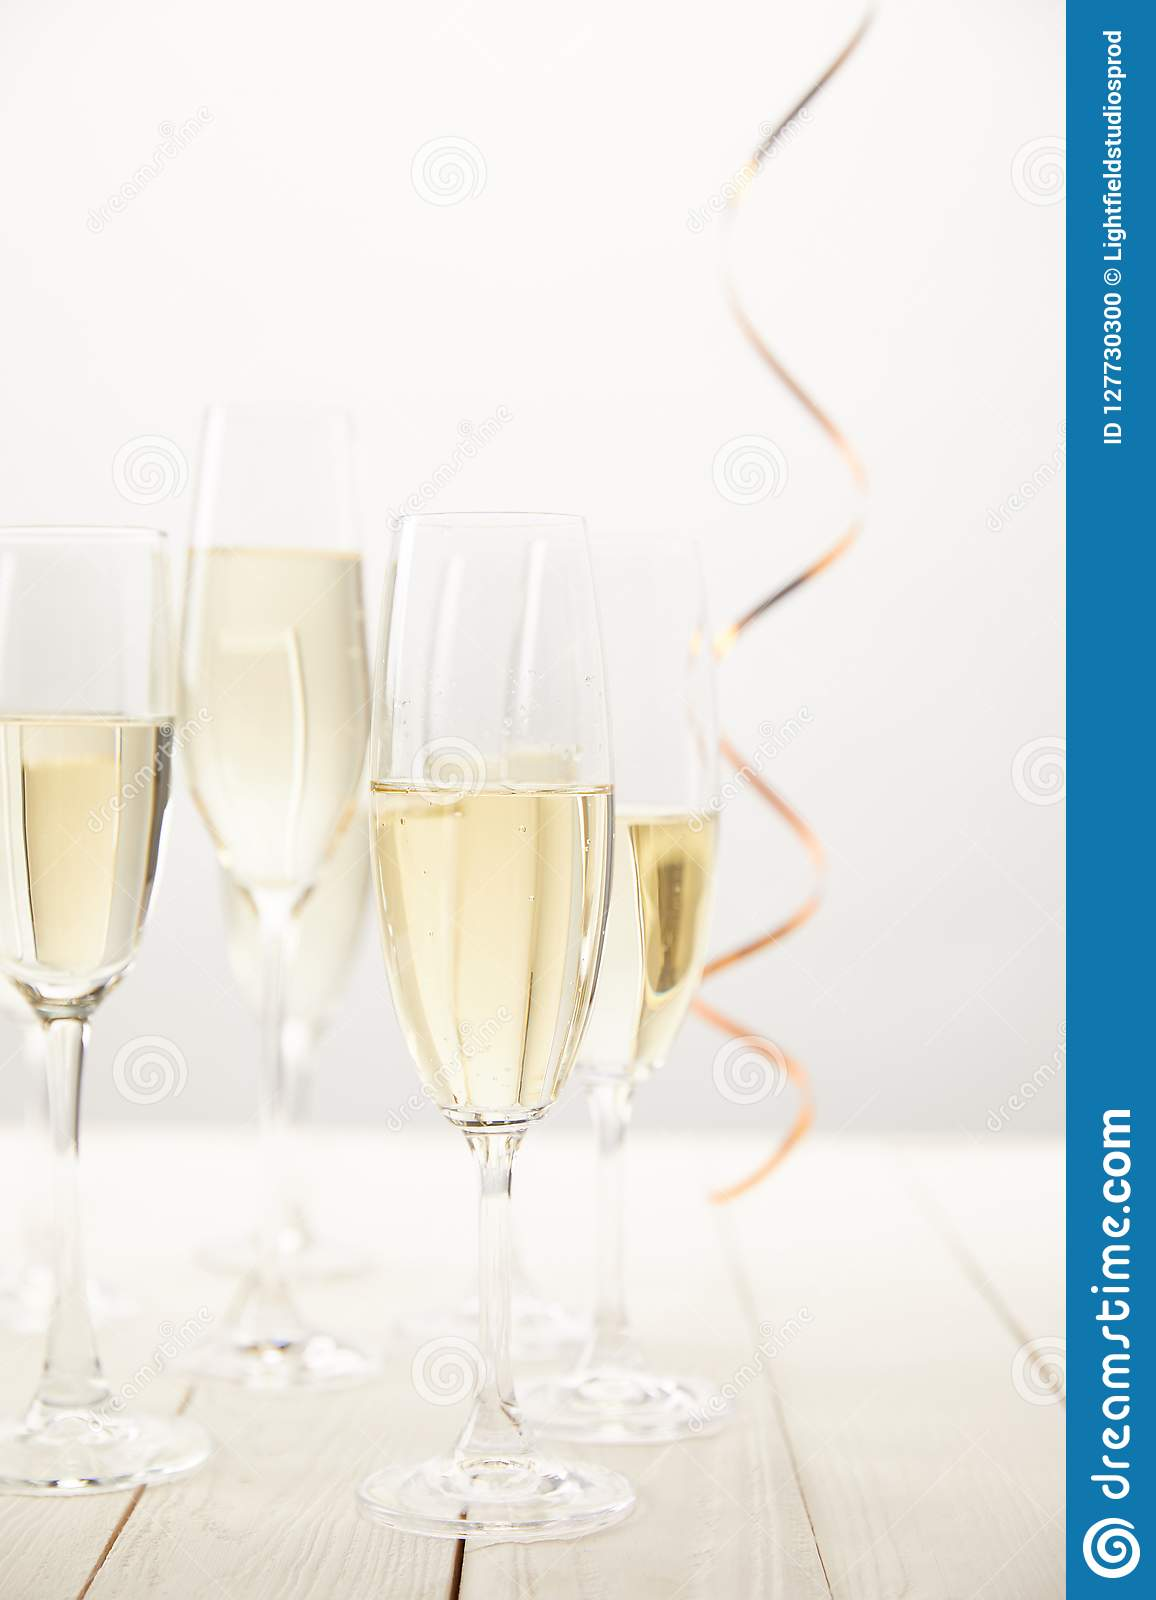 closeup view of champagne glasses with ribbon on white wooden table, holiday concept